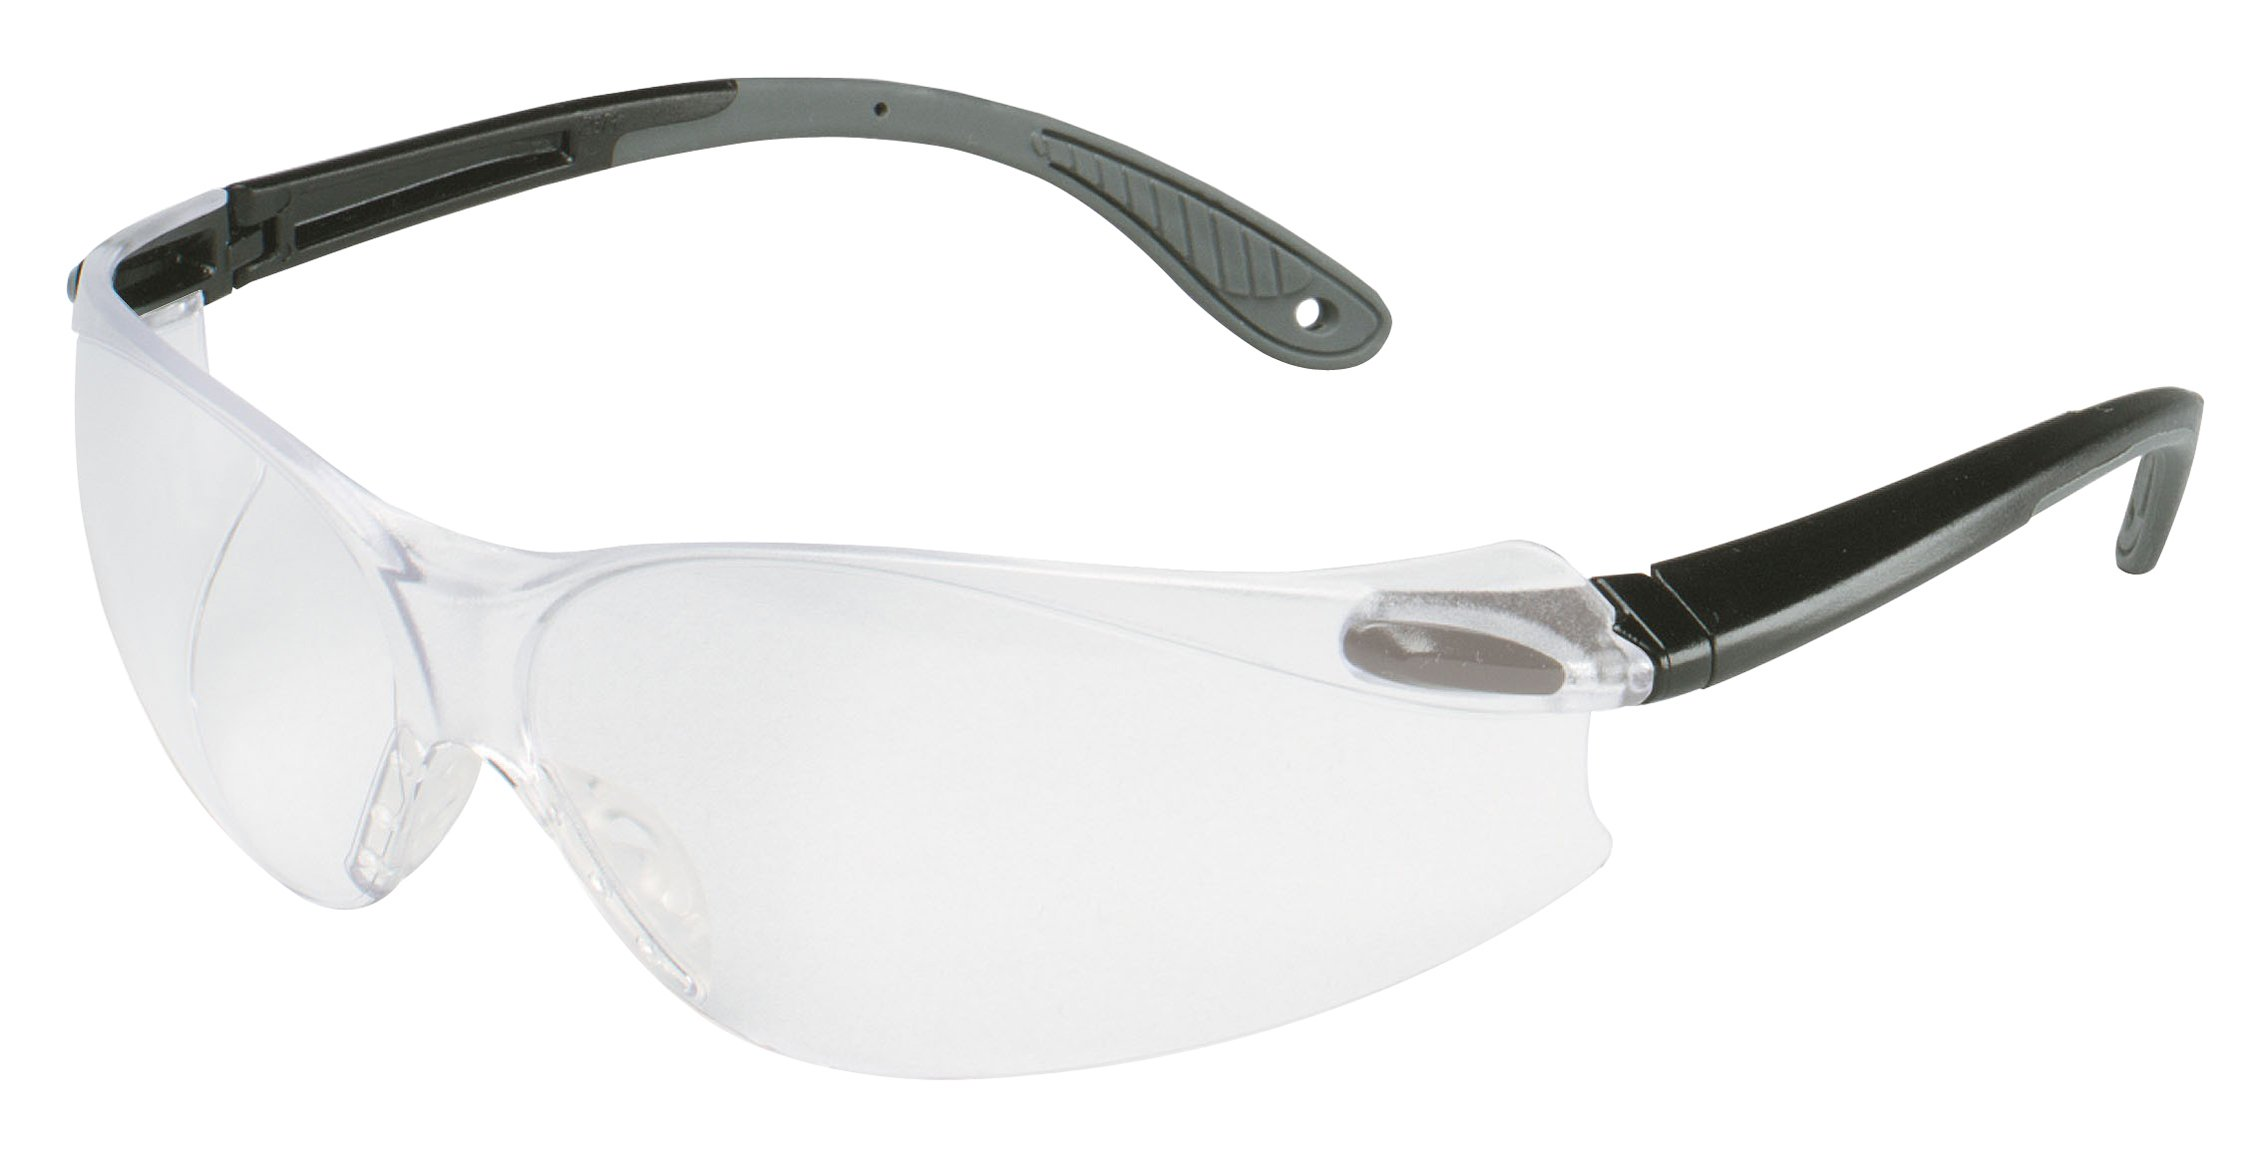 3M Virtua Protective Eyewear V4, 11672-00000-20 Clear Anti-Fog Lens, Black/Gray Temple (Pack of 20)